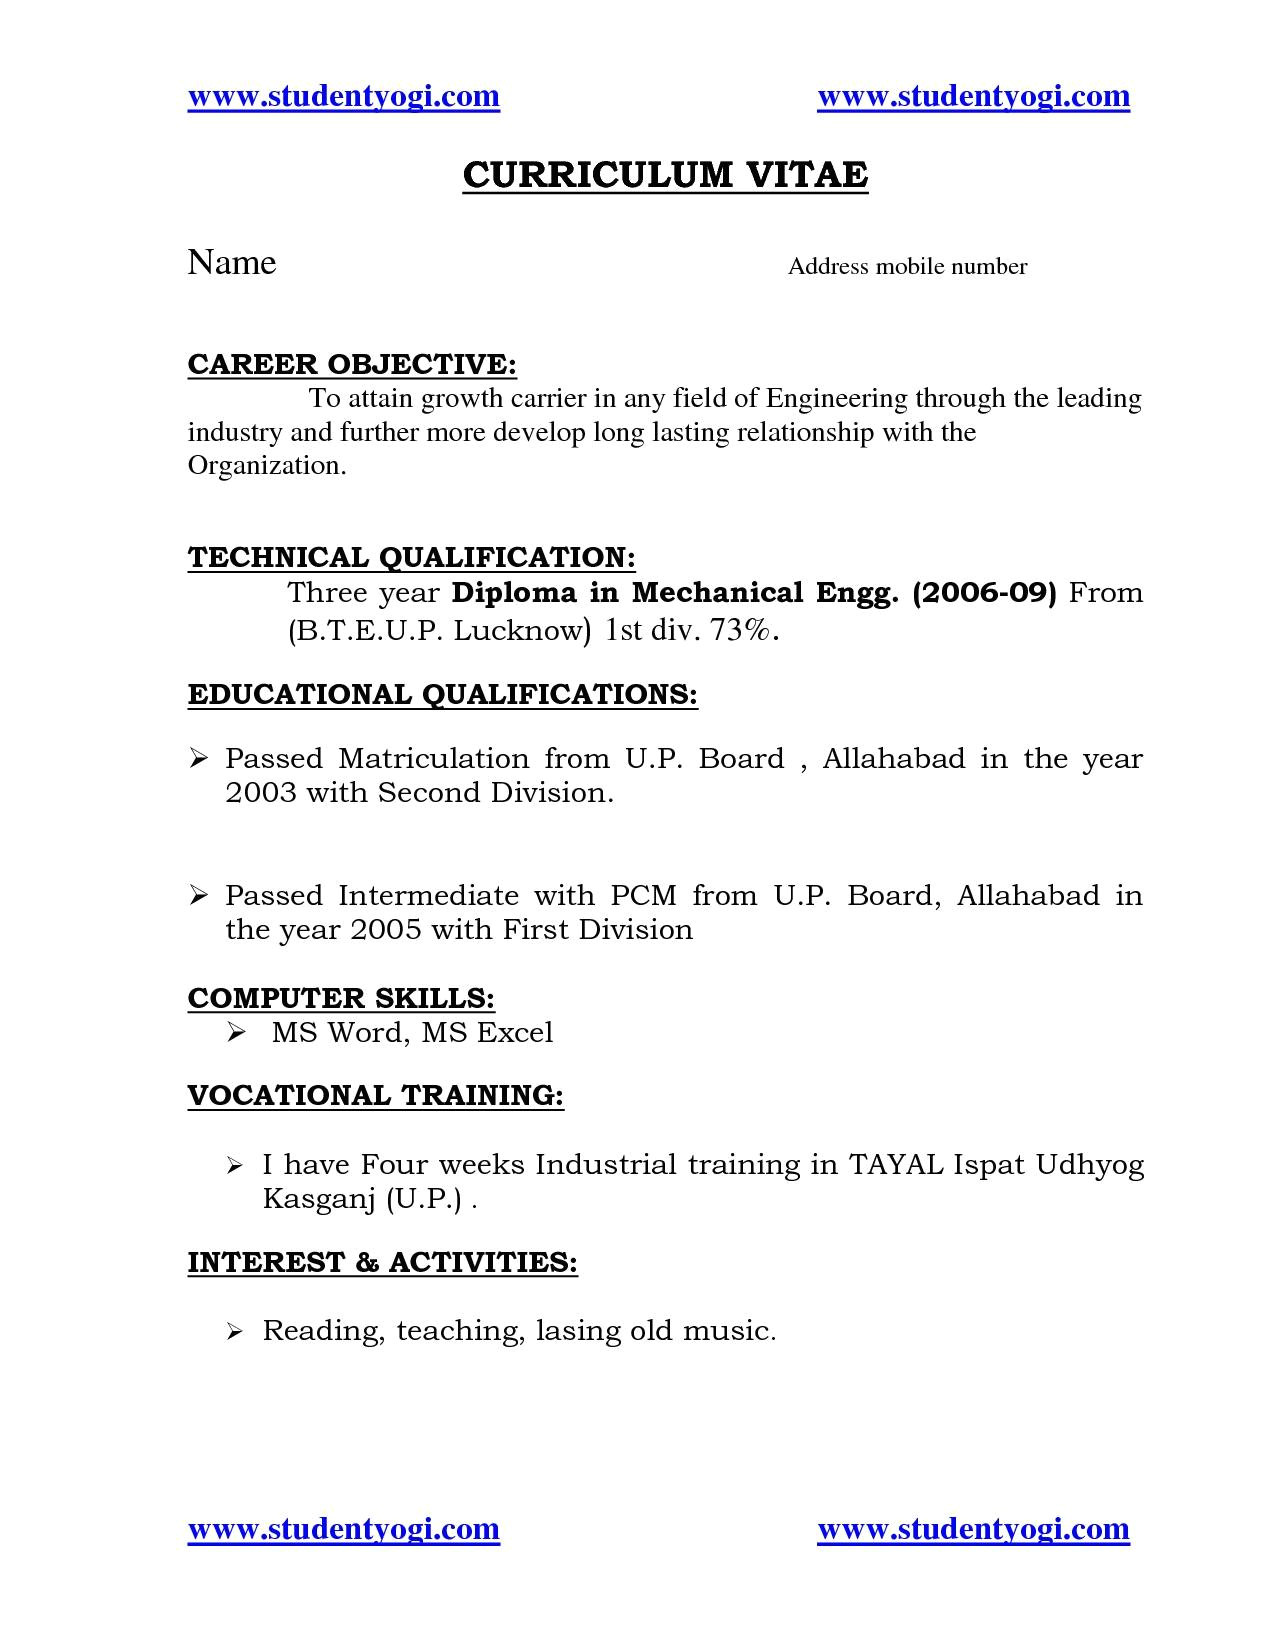 Sample Resume for Diploma Electrical Engineer Sample Resume for Diploma Electrical Engineer Elegant Best